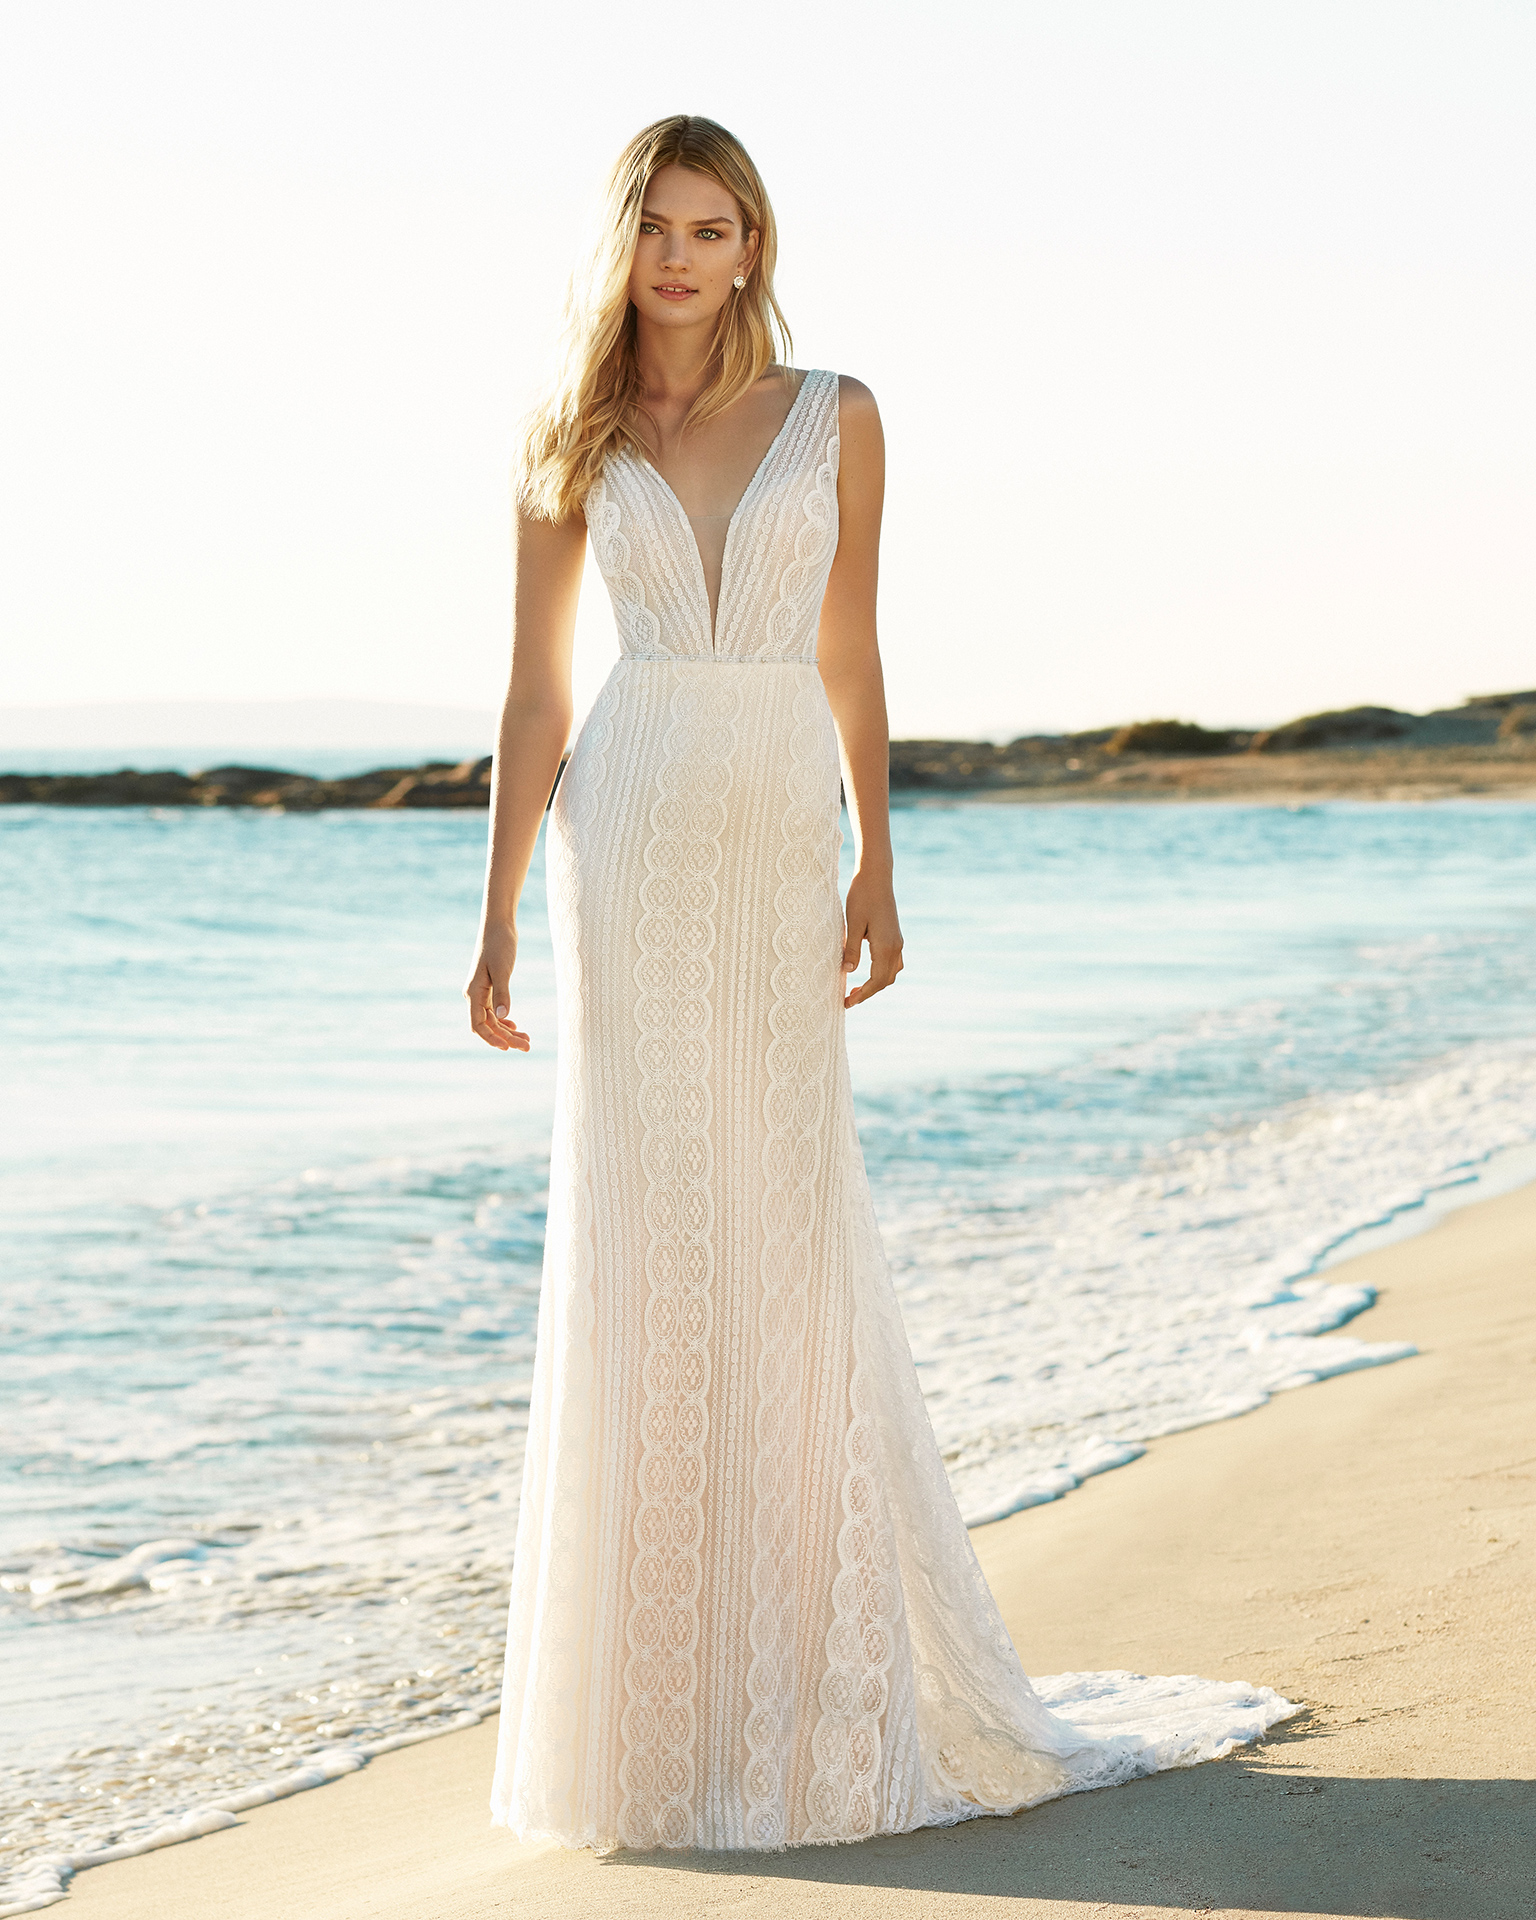 2019_GAURA_AIRE_BEACH_WEDDING_1